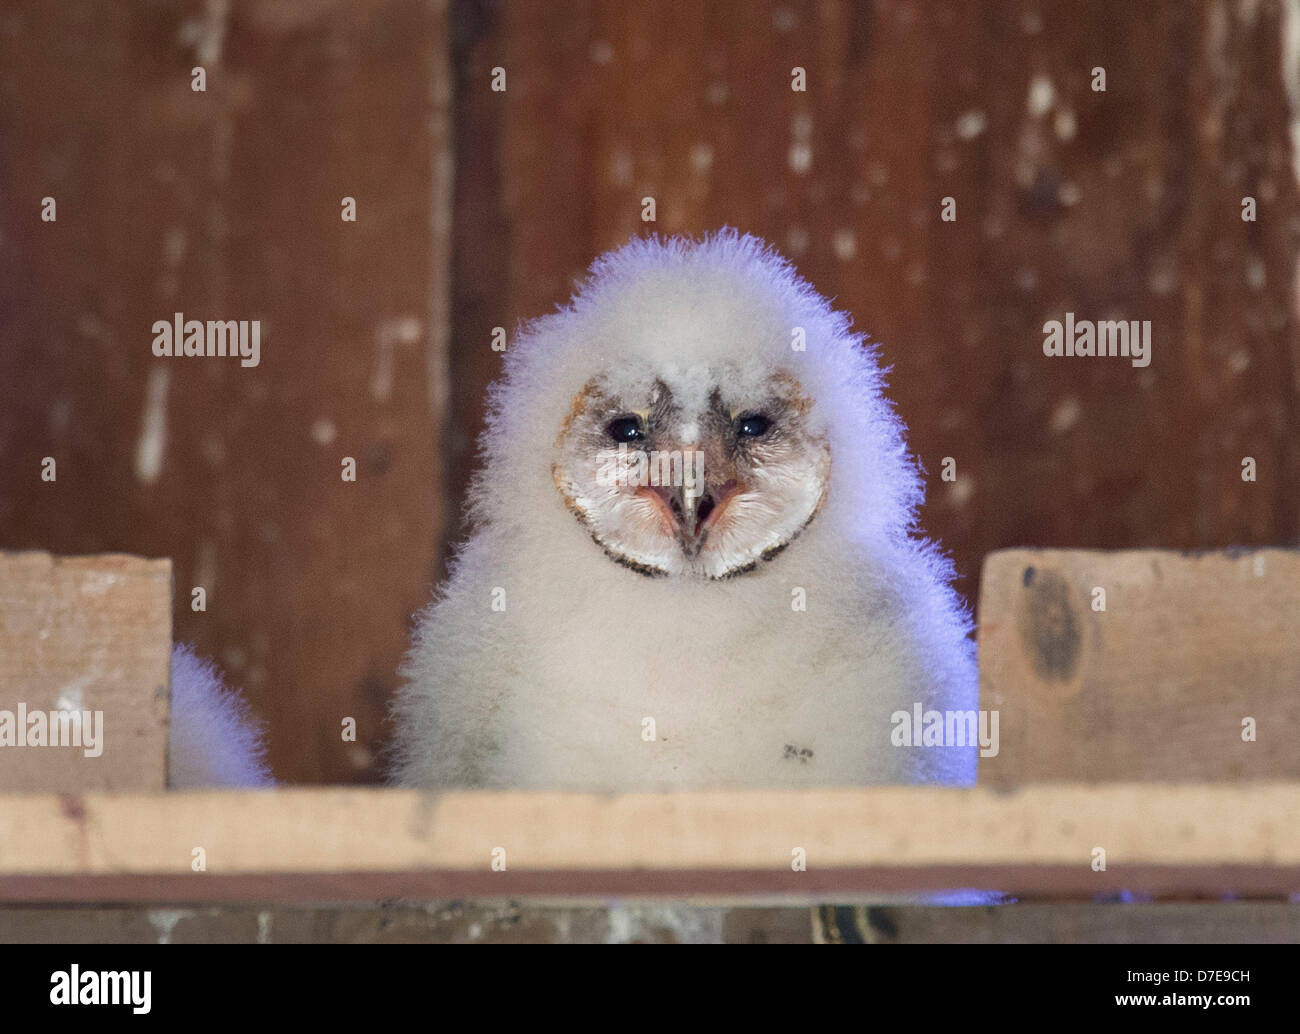 Roseburg, Oregon, USA. 5th May 2013. A barn owl owlet sits in its nest box high in the peak of a barn on a farm Stock Photo